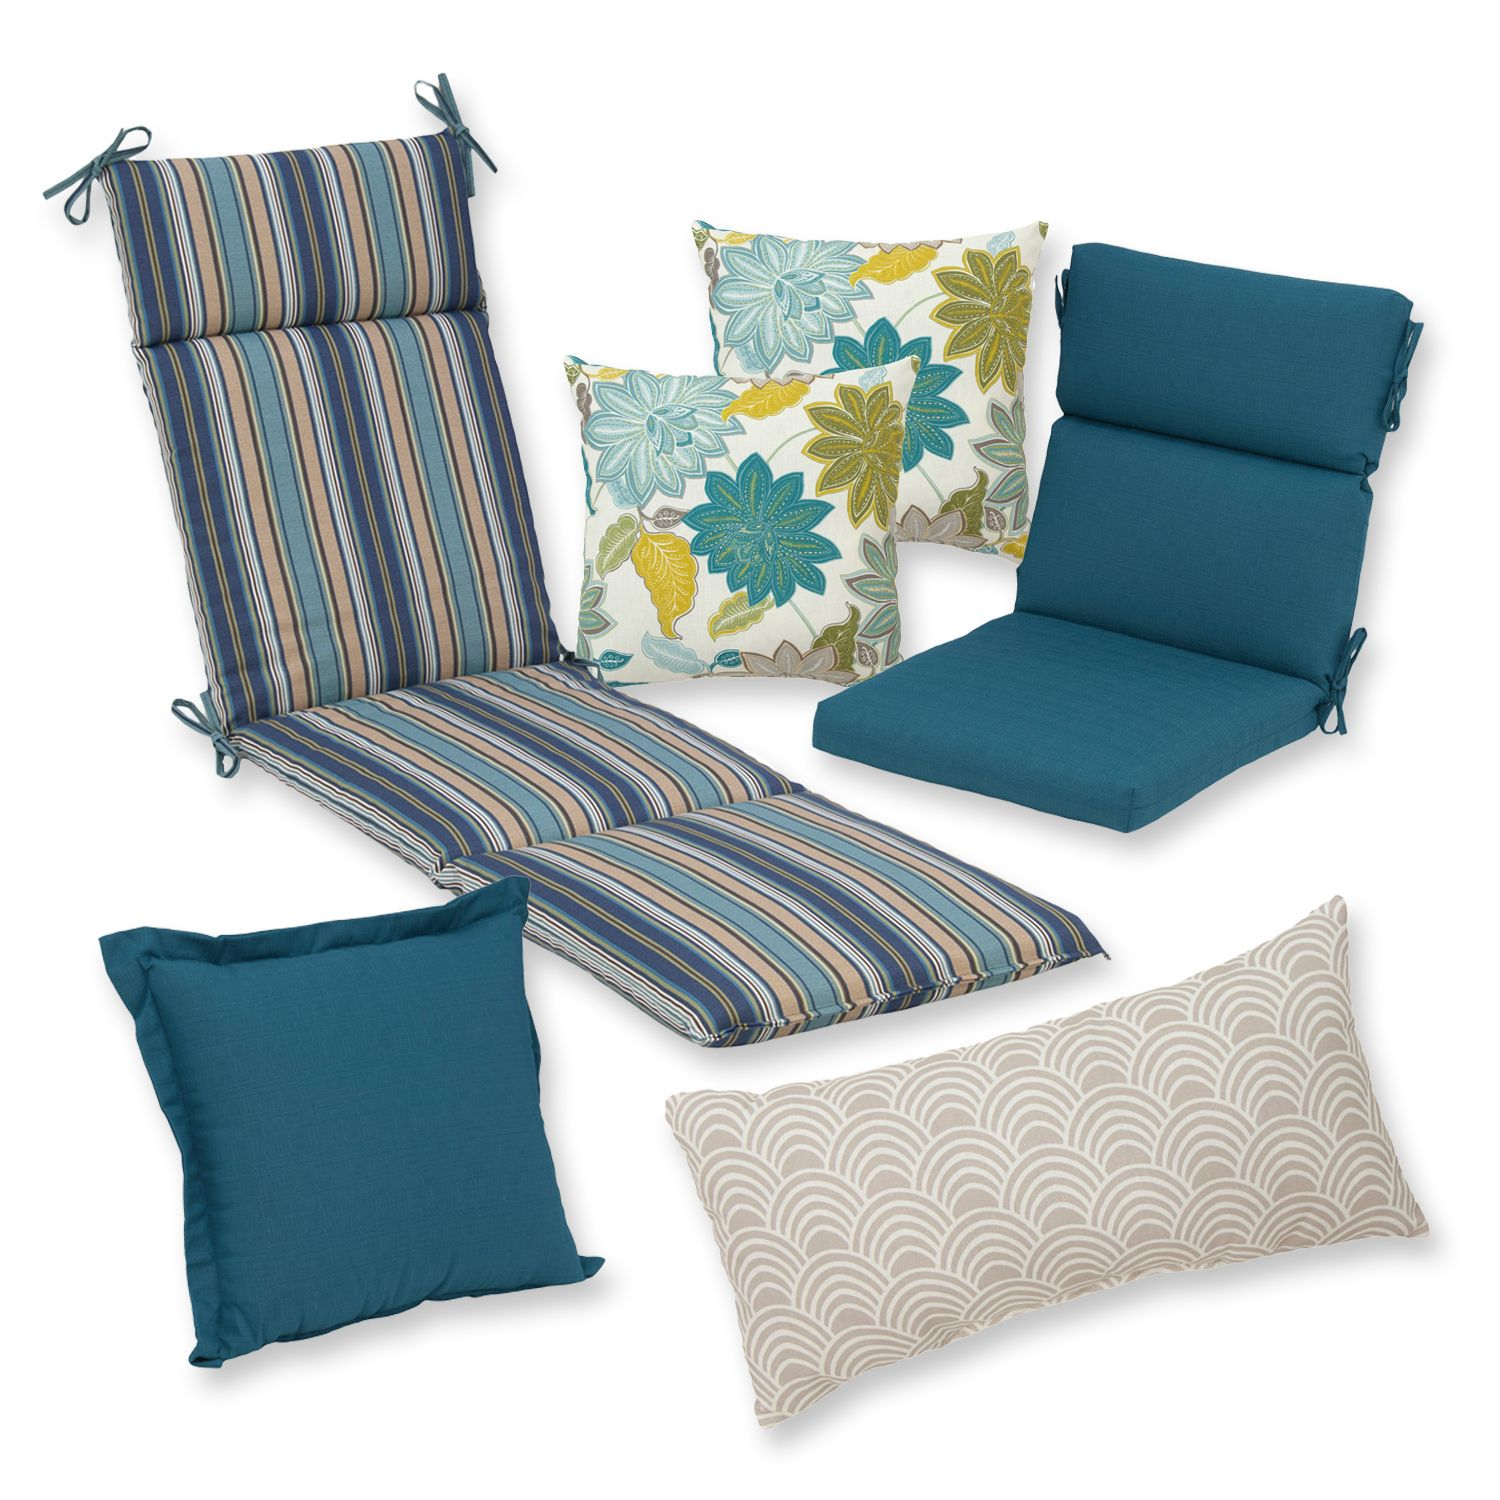 Exceptional Plantation Patterns Patio Cushion Collection